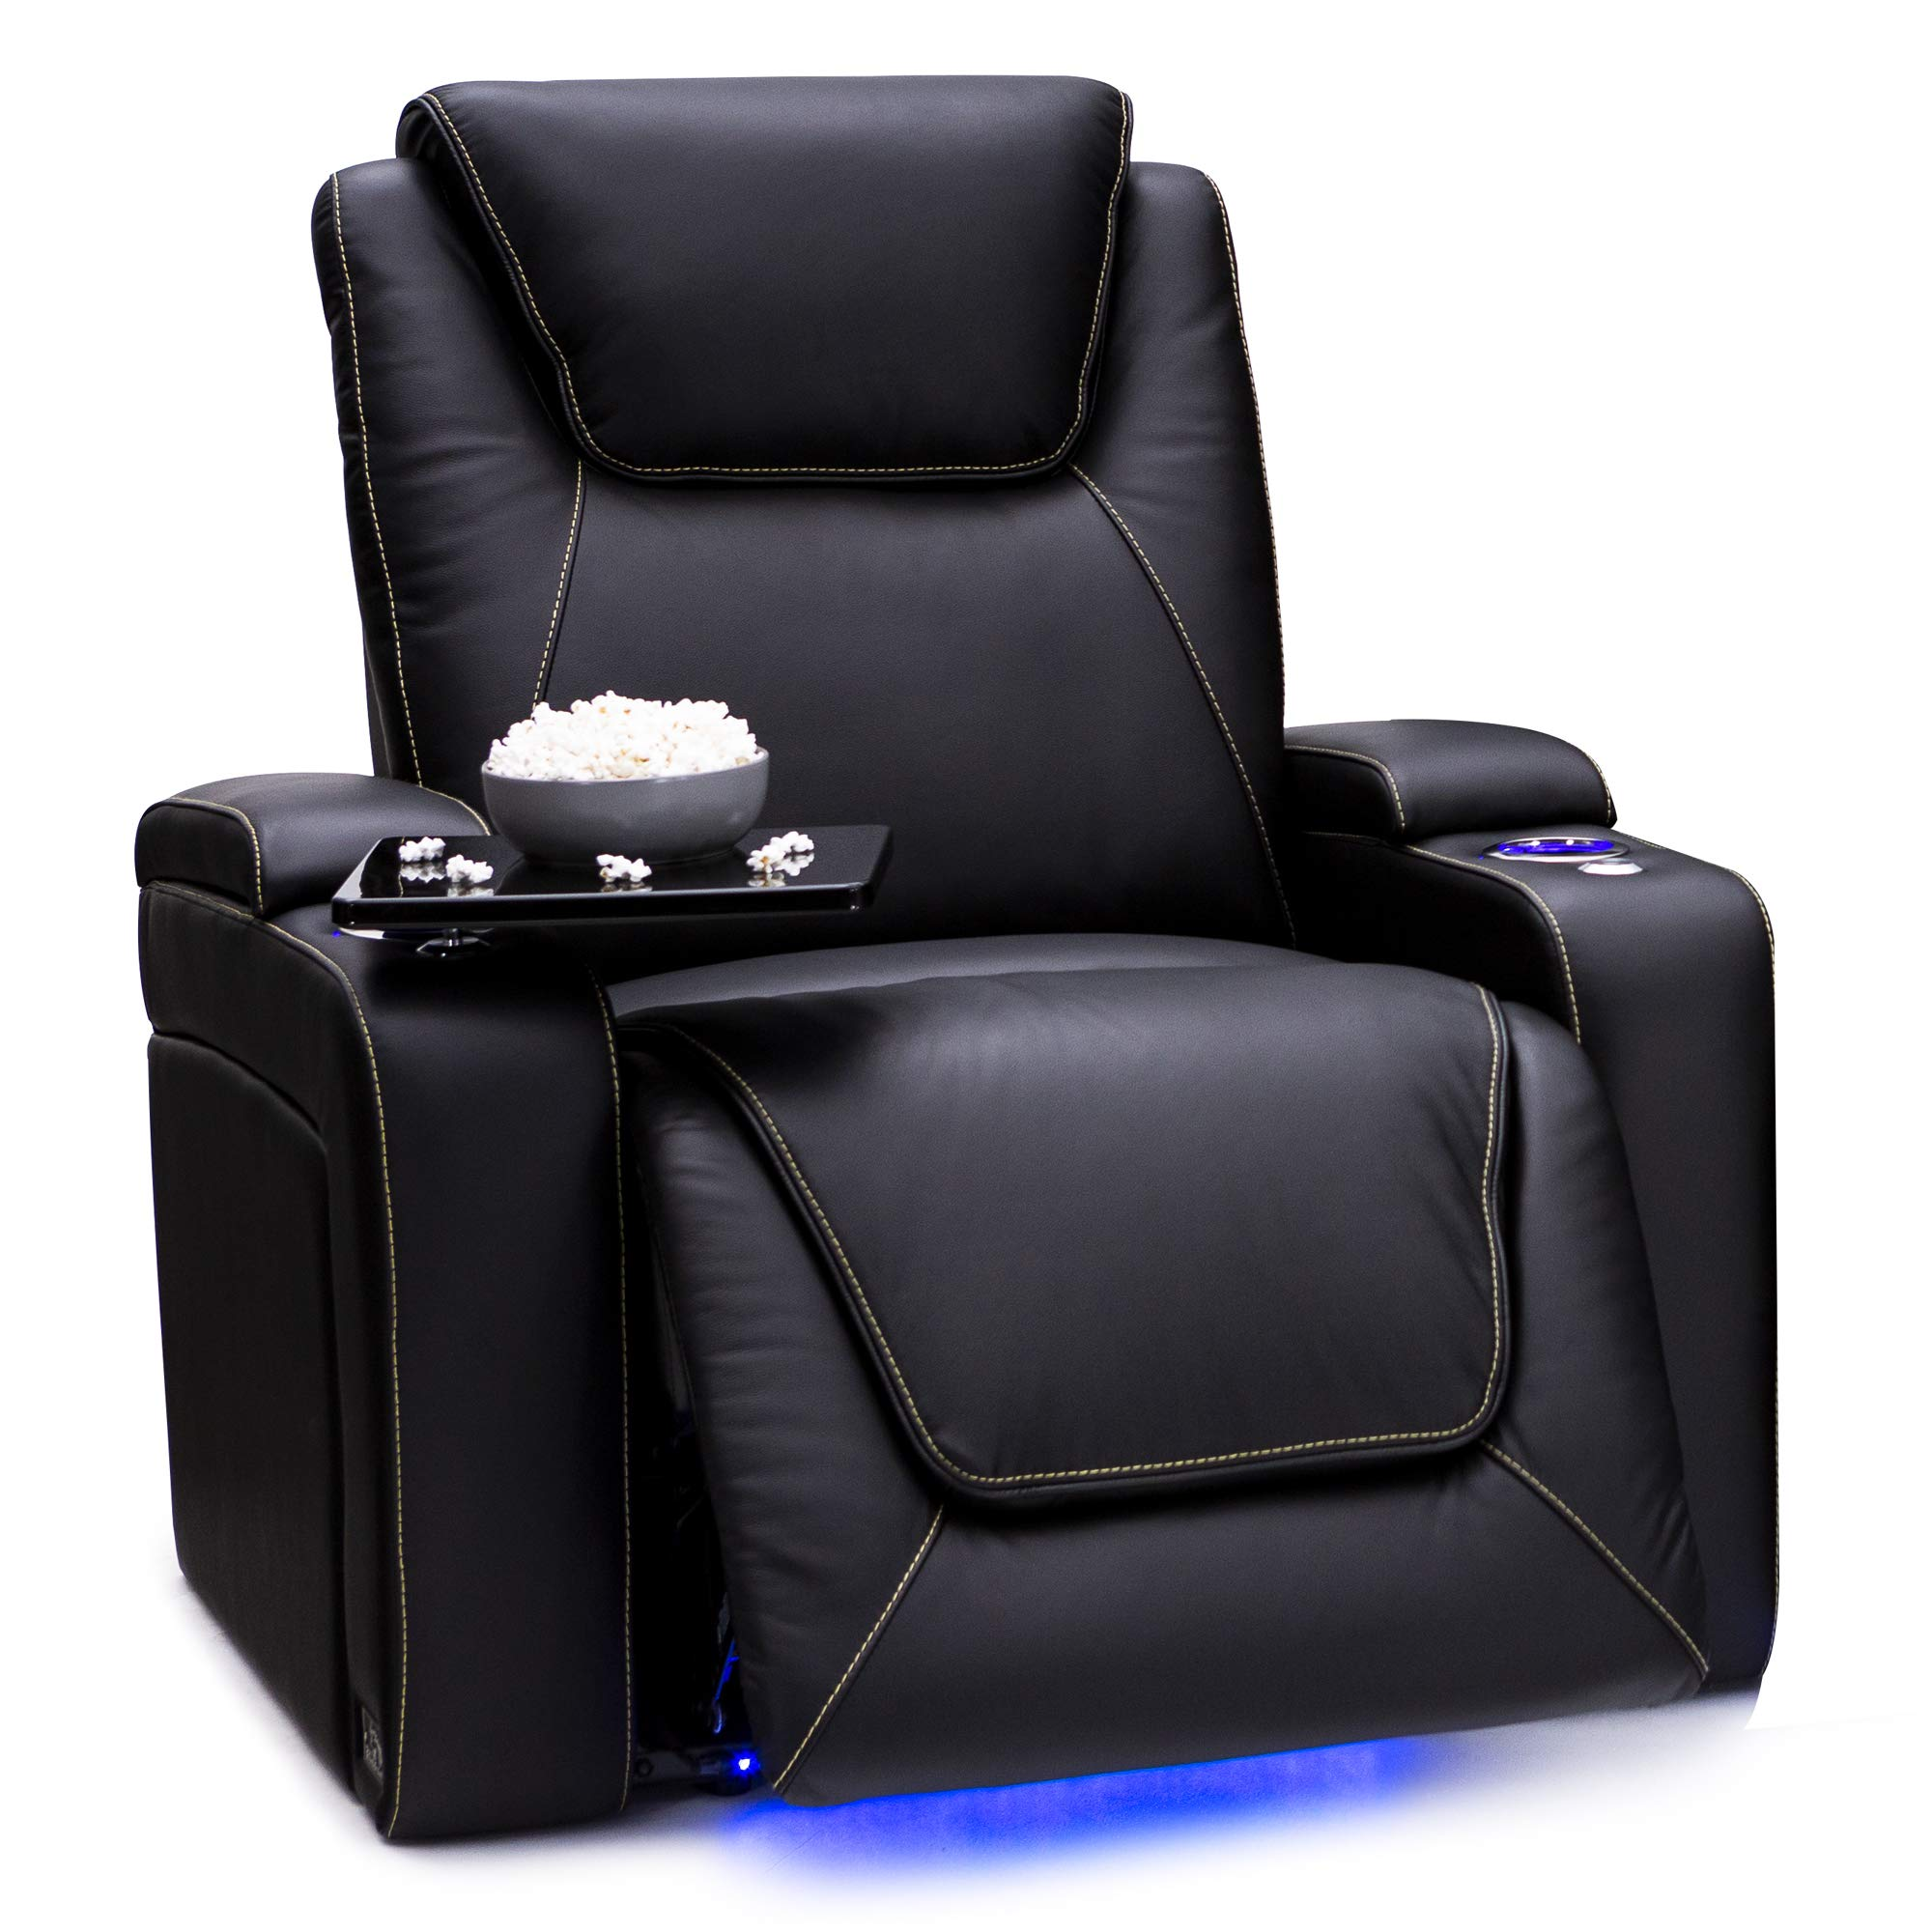 Seatcraft Pantheon Big & Tall 400 lbs Capacity Home Theater Seating Leather Power Recline with Adjustable Powered Headrest and Lumbar Support, SoundShaker, and Lighted Cup Holders (Black) by Seatcraft